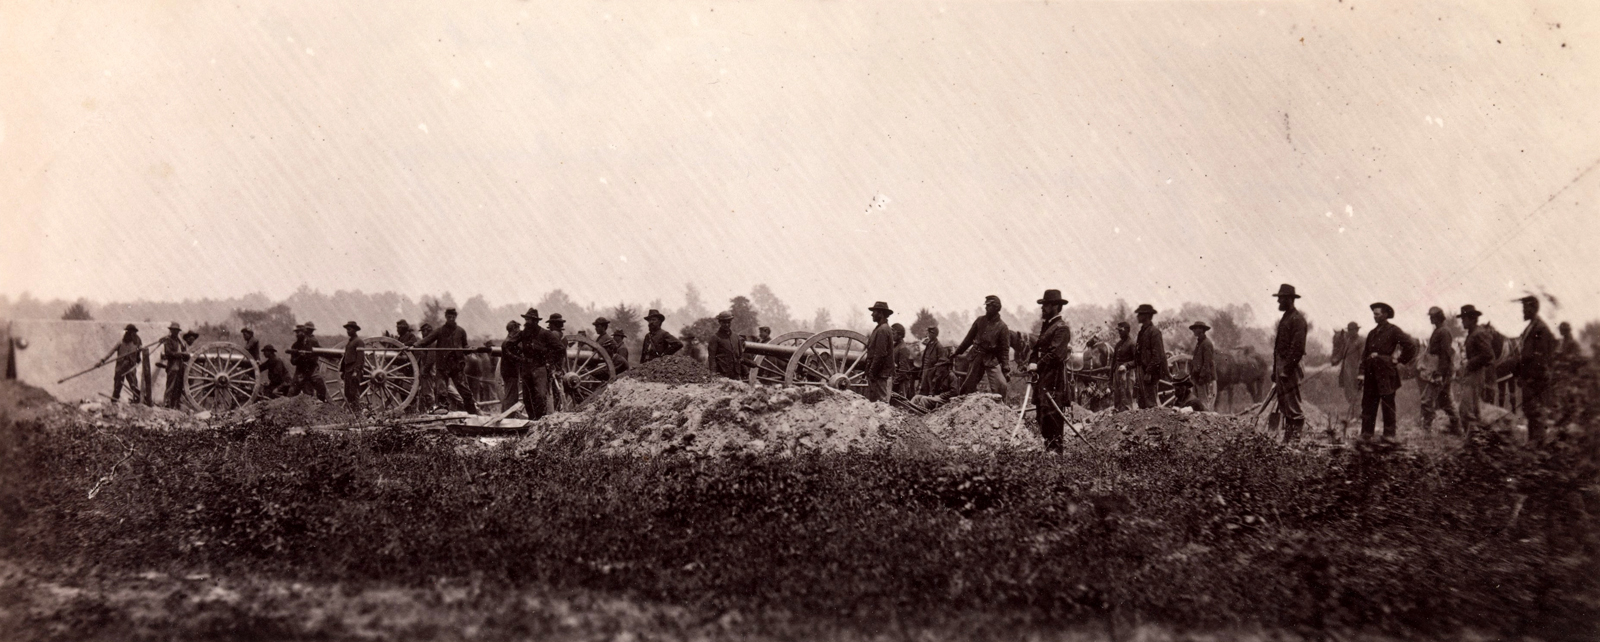 This photograph shows the men and cannons of the Pennsylvania Light Artillery, in 1864.